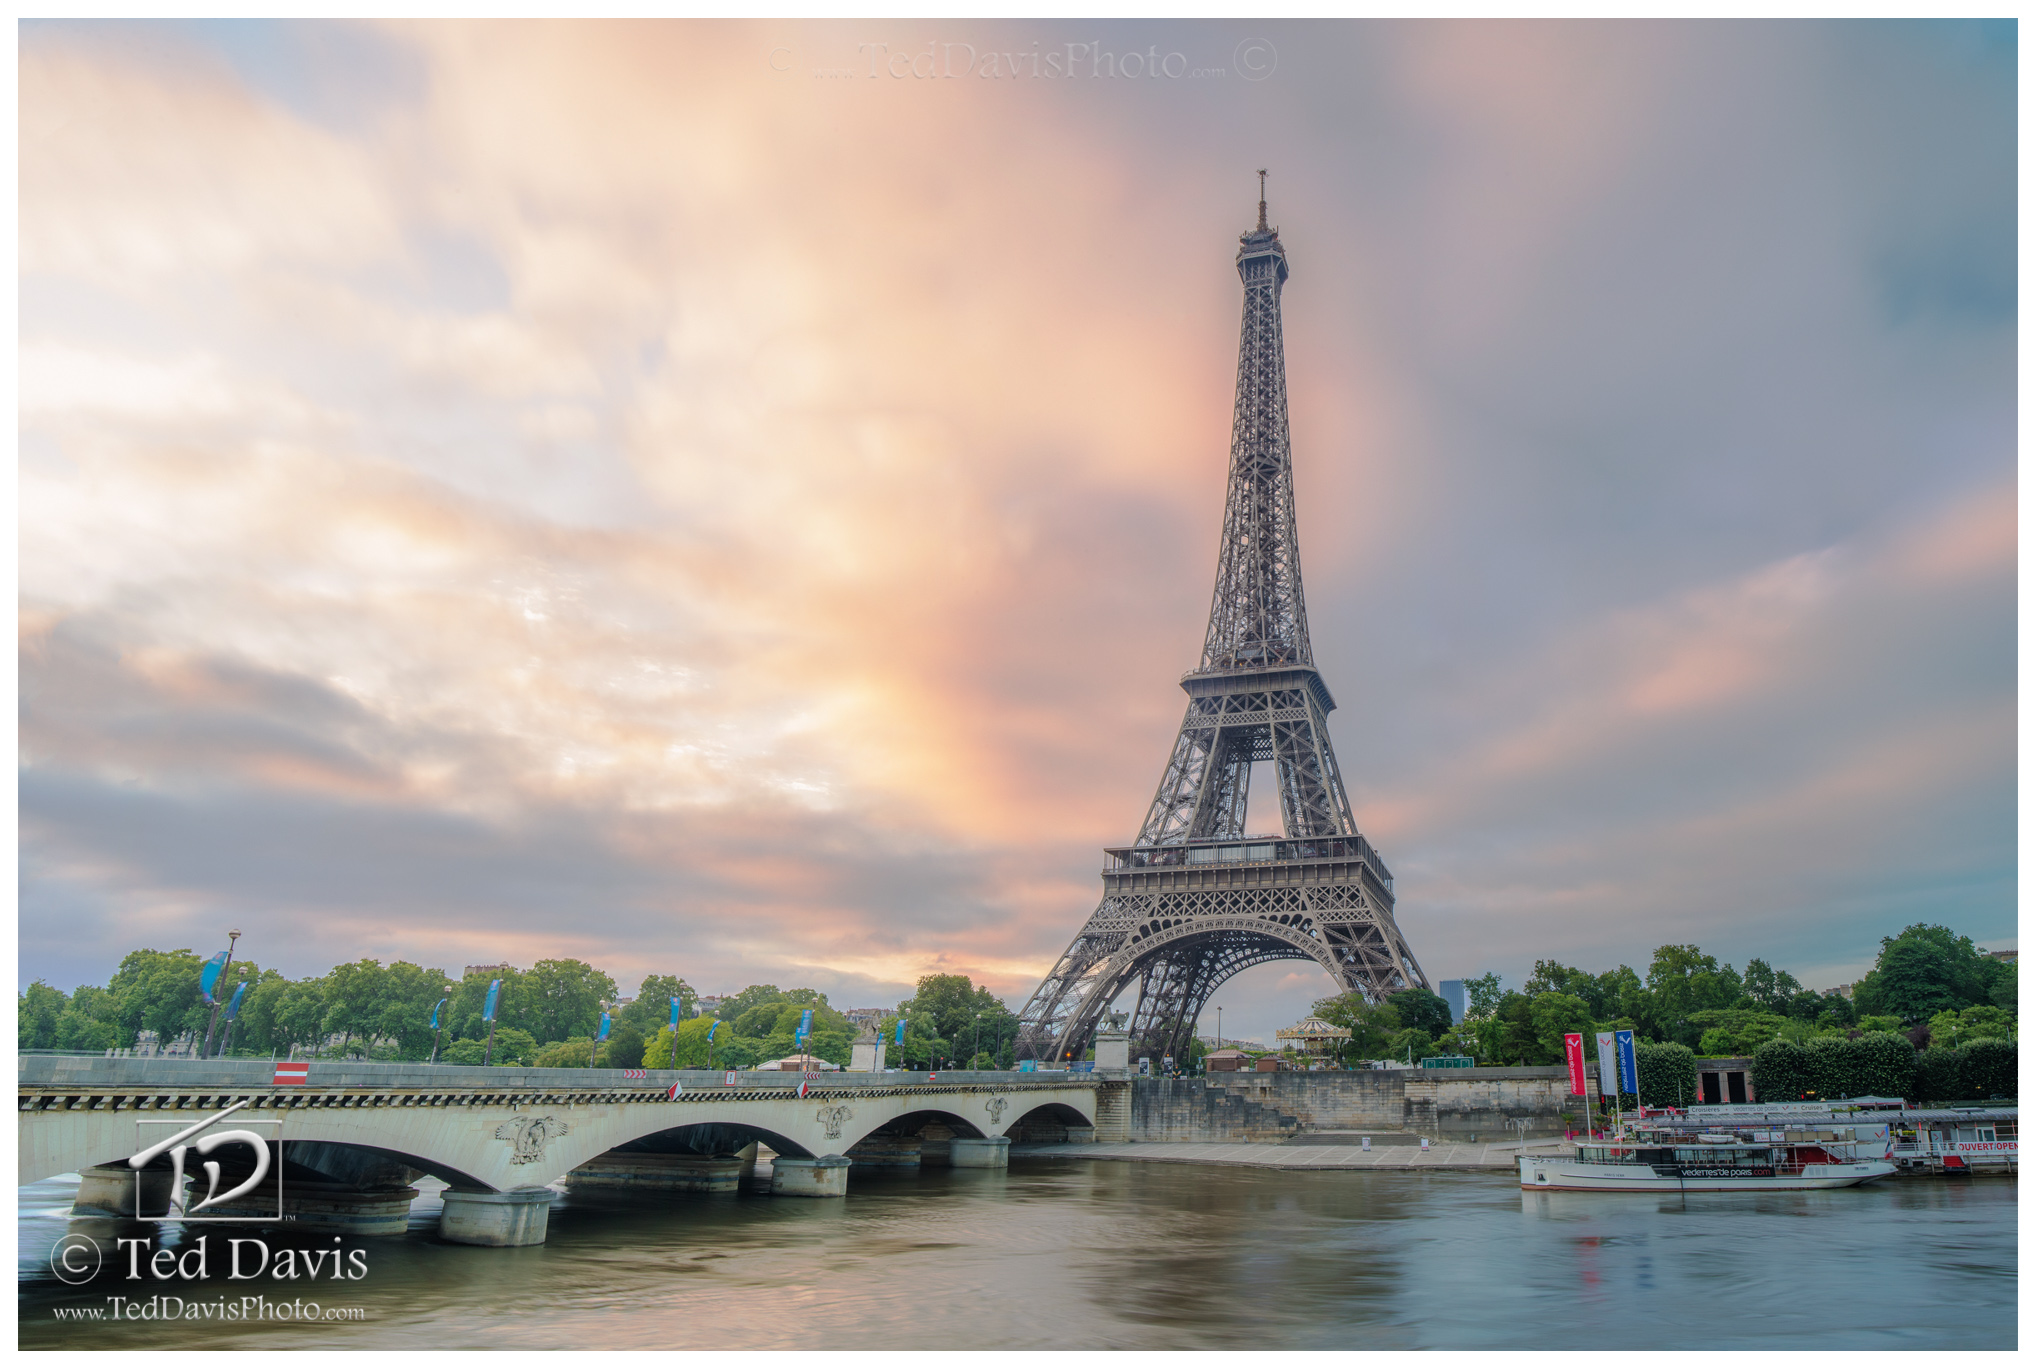 Tour, Tower, Eiffel, Paris, France, splendor, daylight, bronze, gold, seine, precious, horizon, clouds, sky, photograph, photo